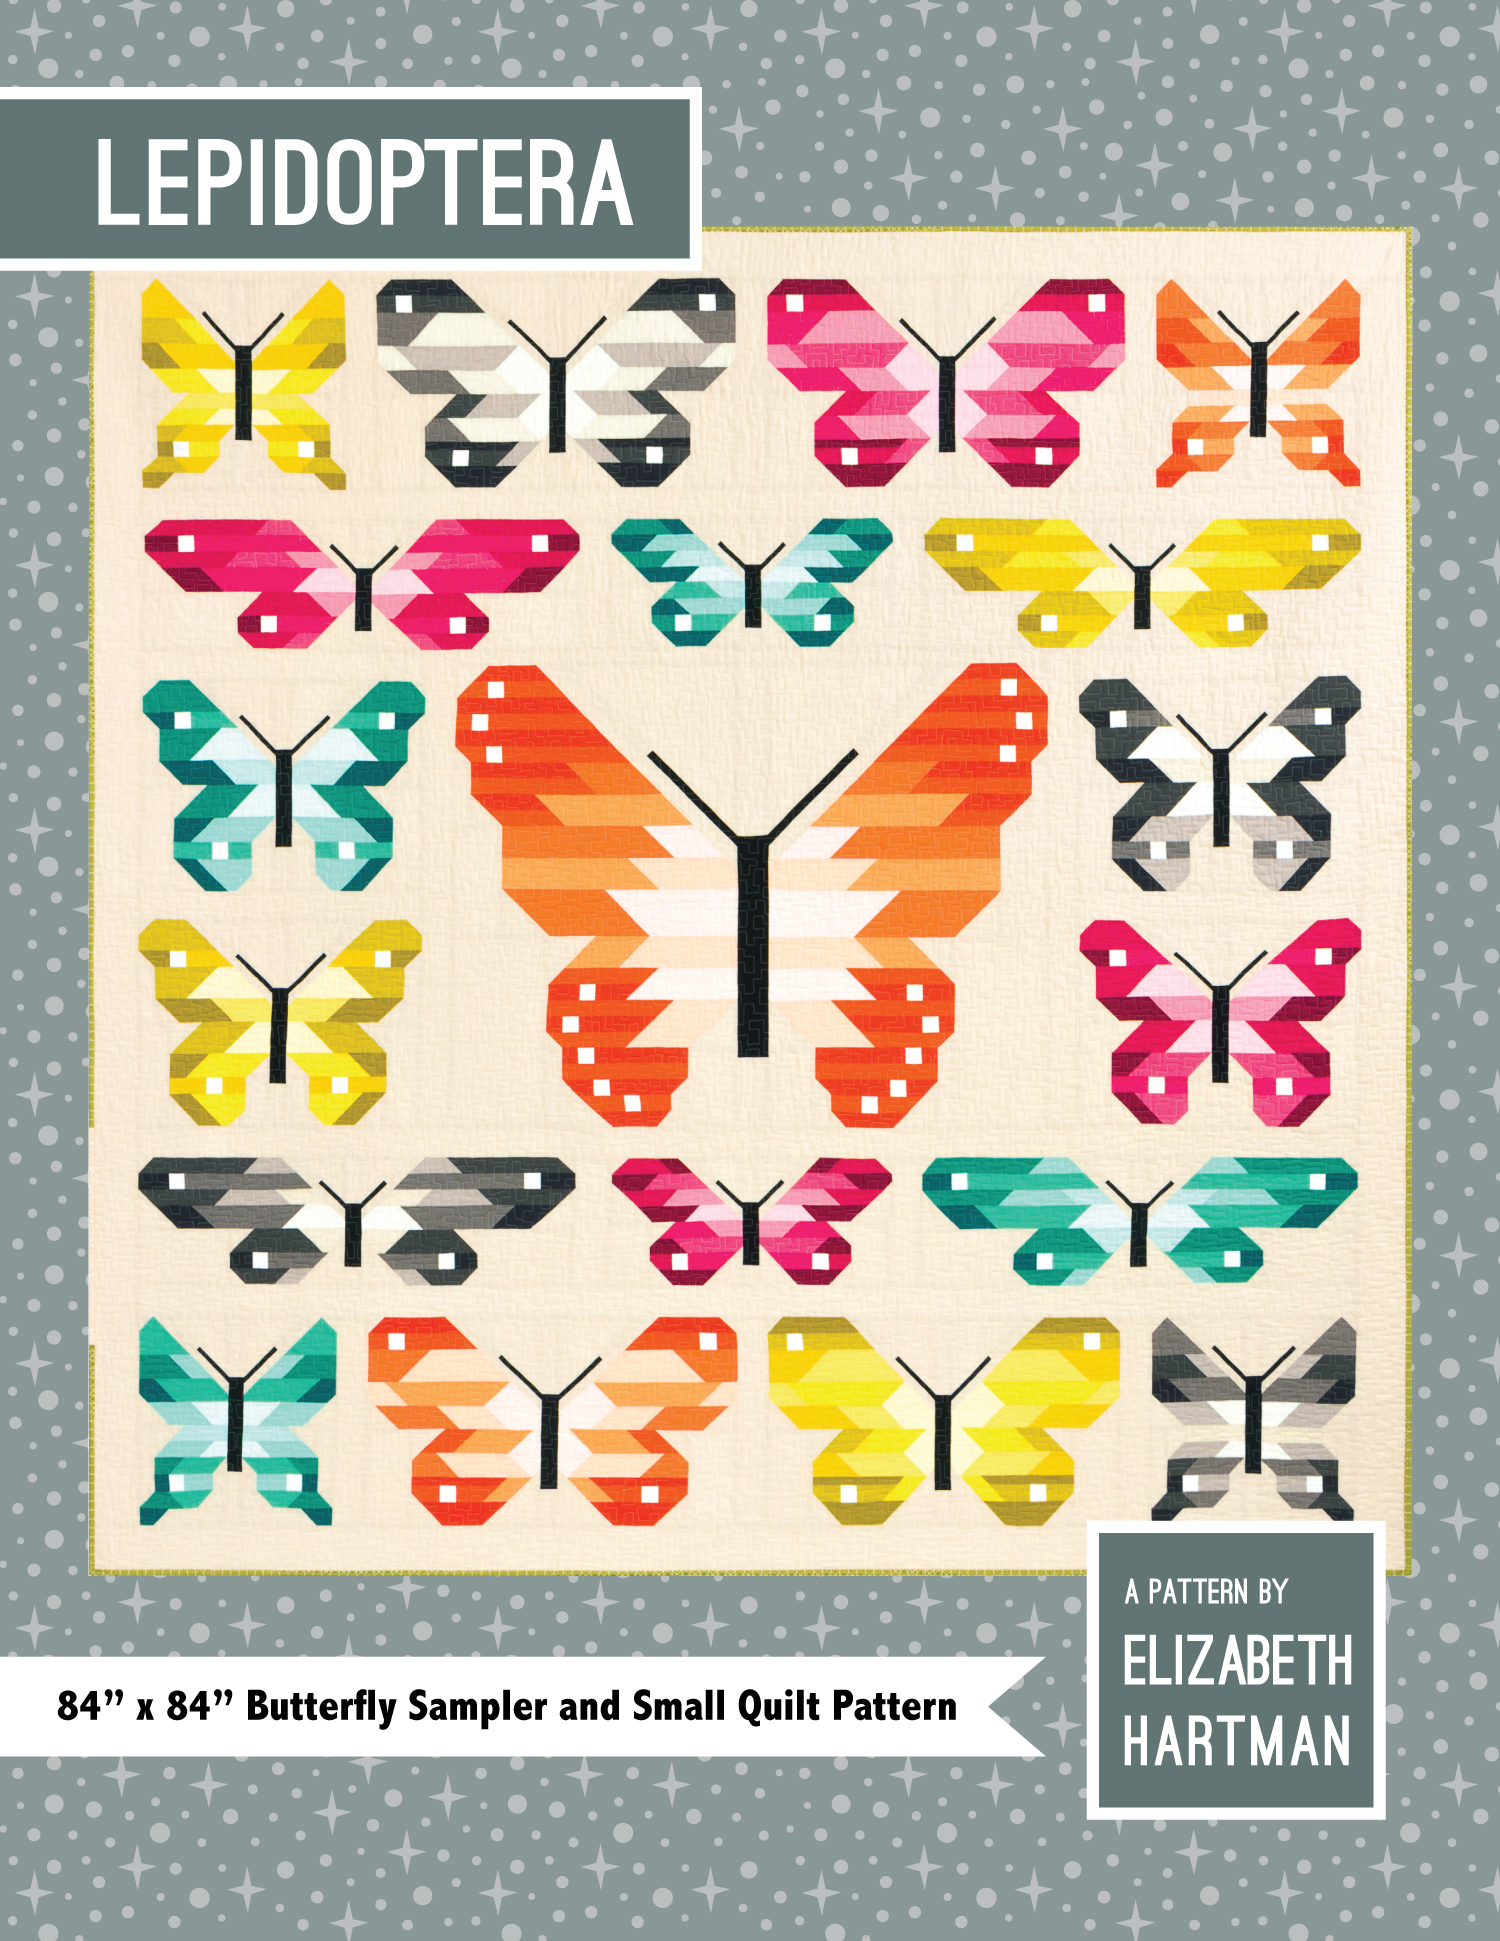 EH027 Lepidoptera Pattern Cover